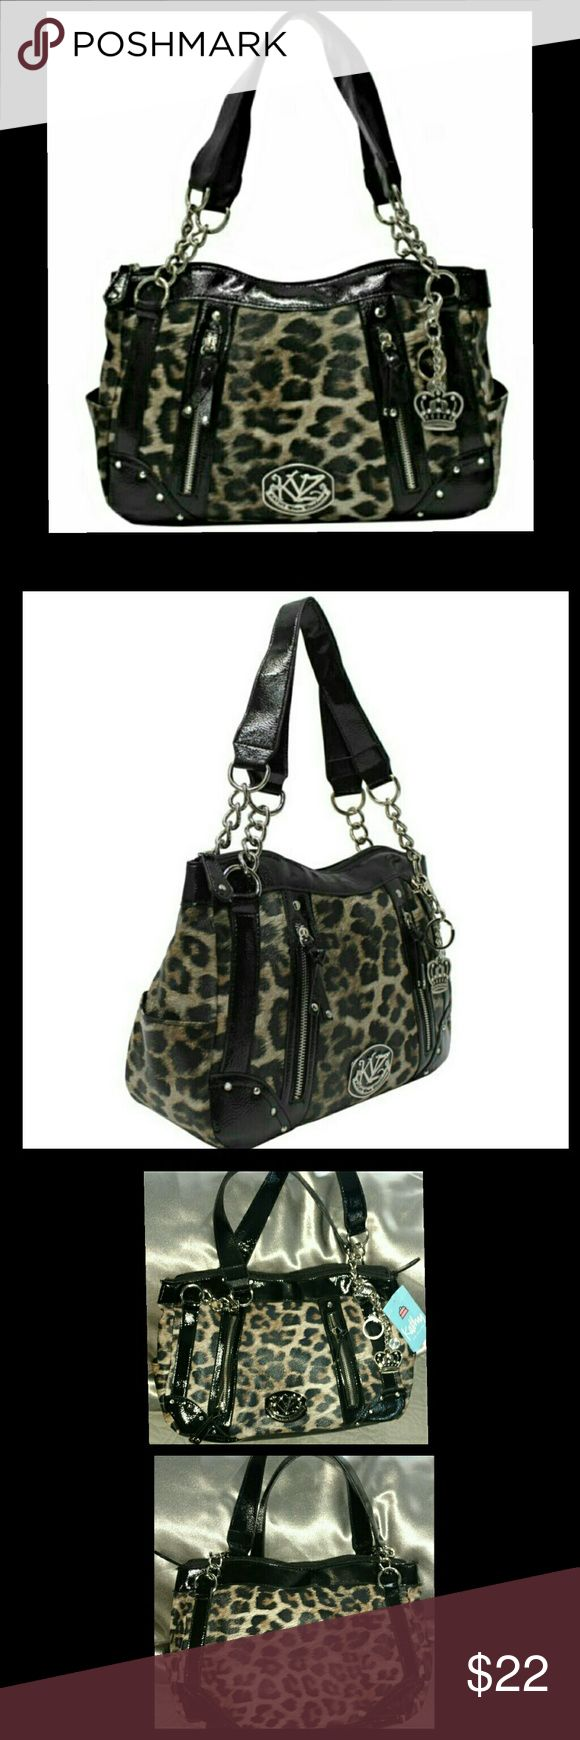 Kathy Van Zeeland Midsize Cheetah Print Satchel Kathy Van Zeeland Midsize Cheetah Print Satchel. NWT   Bag Aprox Dimensions  (W x H) 15in x 9.5In STRAP DROP: 9IN from shoulder to opening of purse. Features:  top zipper closure ,  interior back wall zip pocket. And 2  interior wall side by side slide in pockets Double Handles 4 Compartment on outside  2 small zip pockets and 2 slide in pockets on left and right side of bag Kathy Van Zeeland Bags